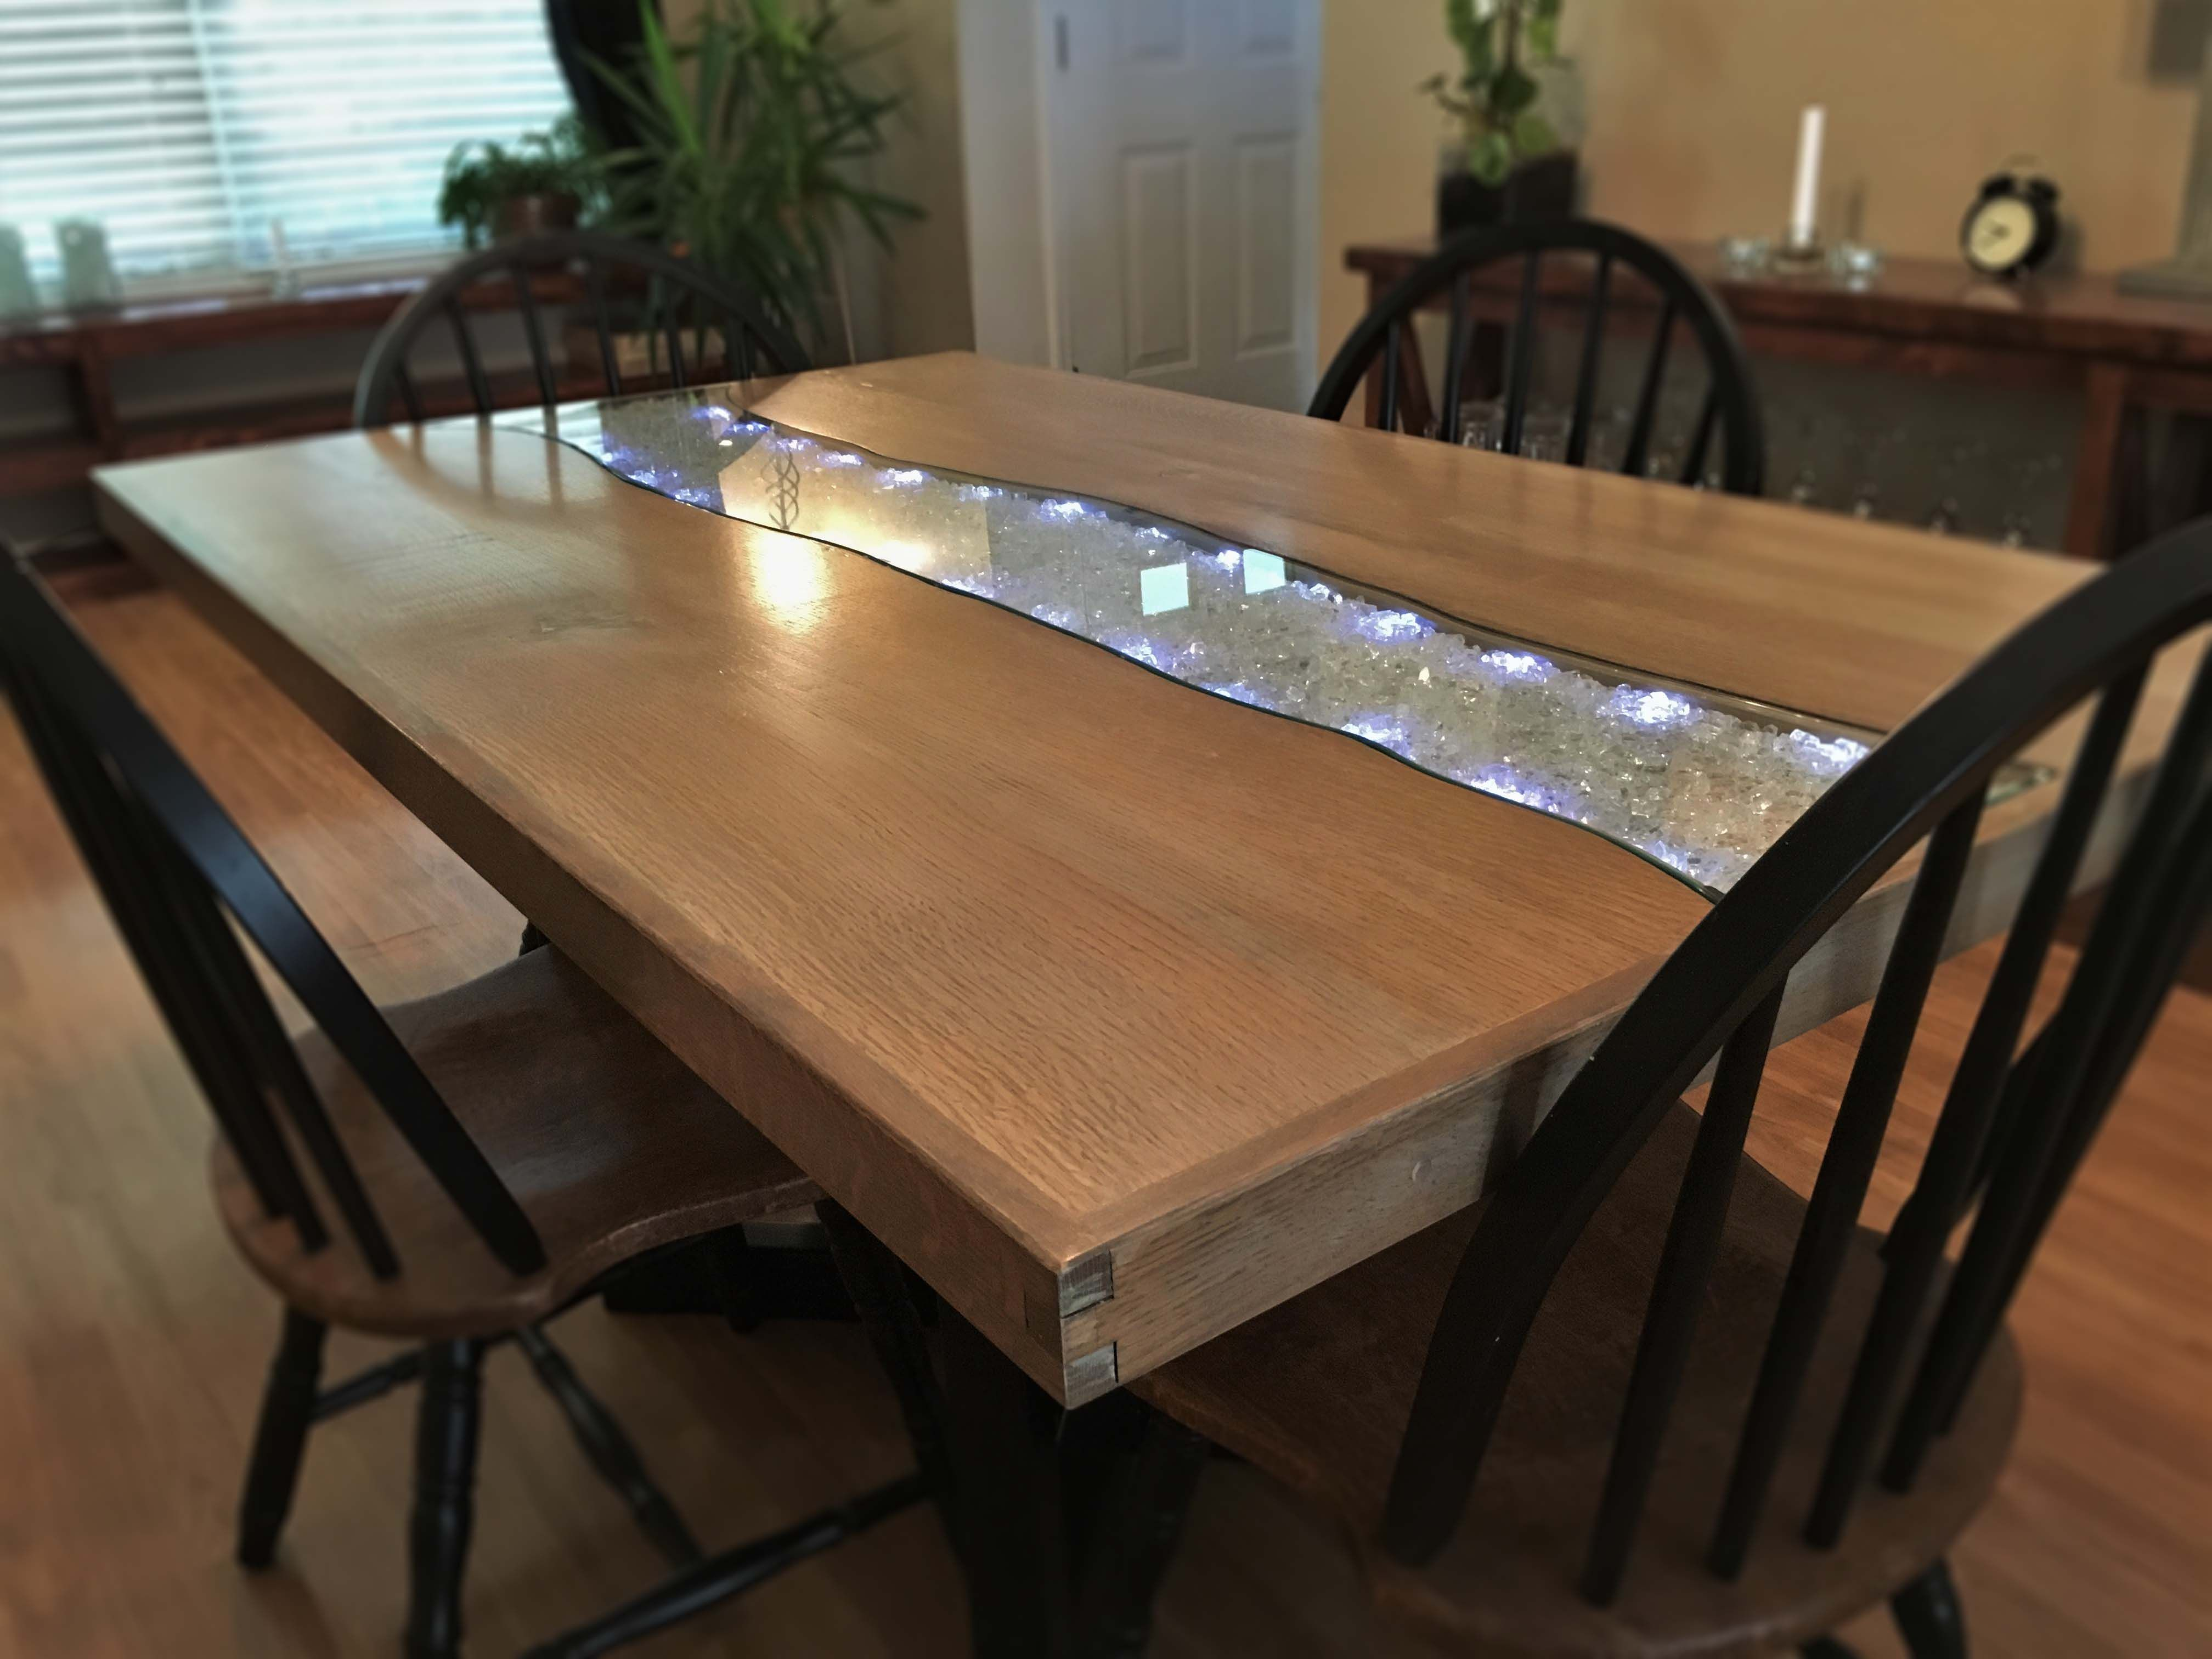 Hand Made Starlight Glowing River Dining Table